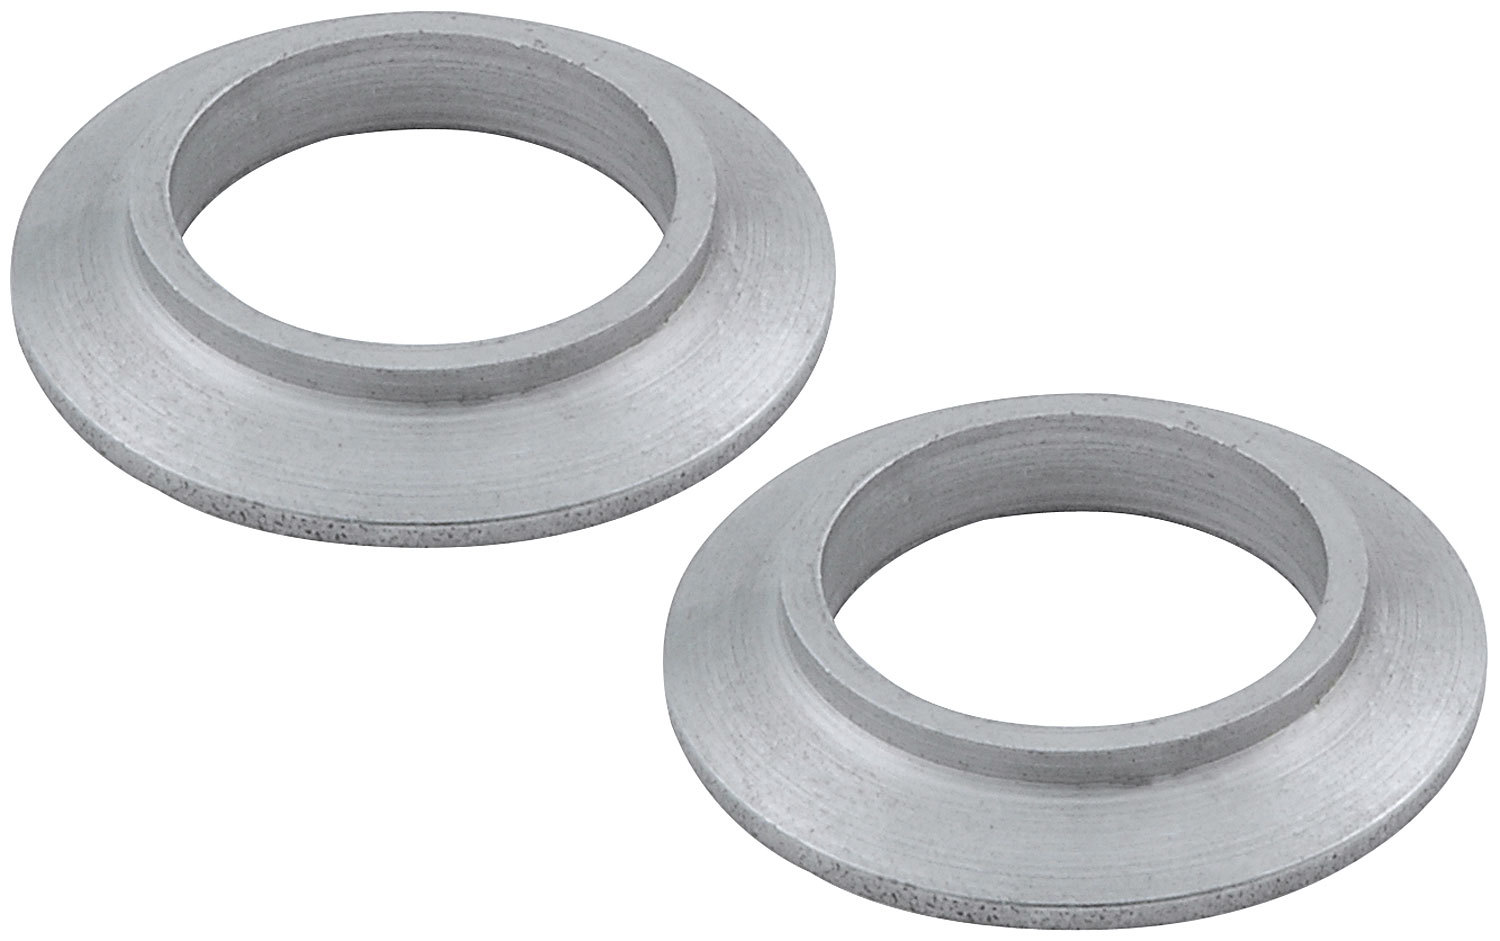 Allstar Performance 60189-50 Tapered Spacer, 3/4 in ID, 21/64 in Thick, Steel, Zinc Oxide, Universal, Set of 50